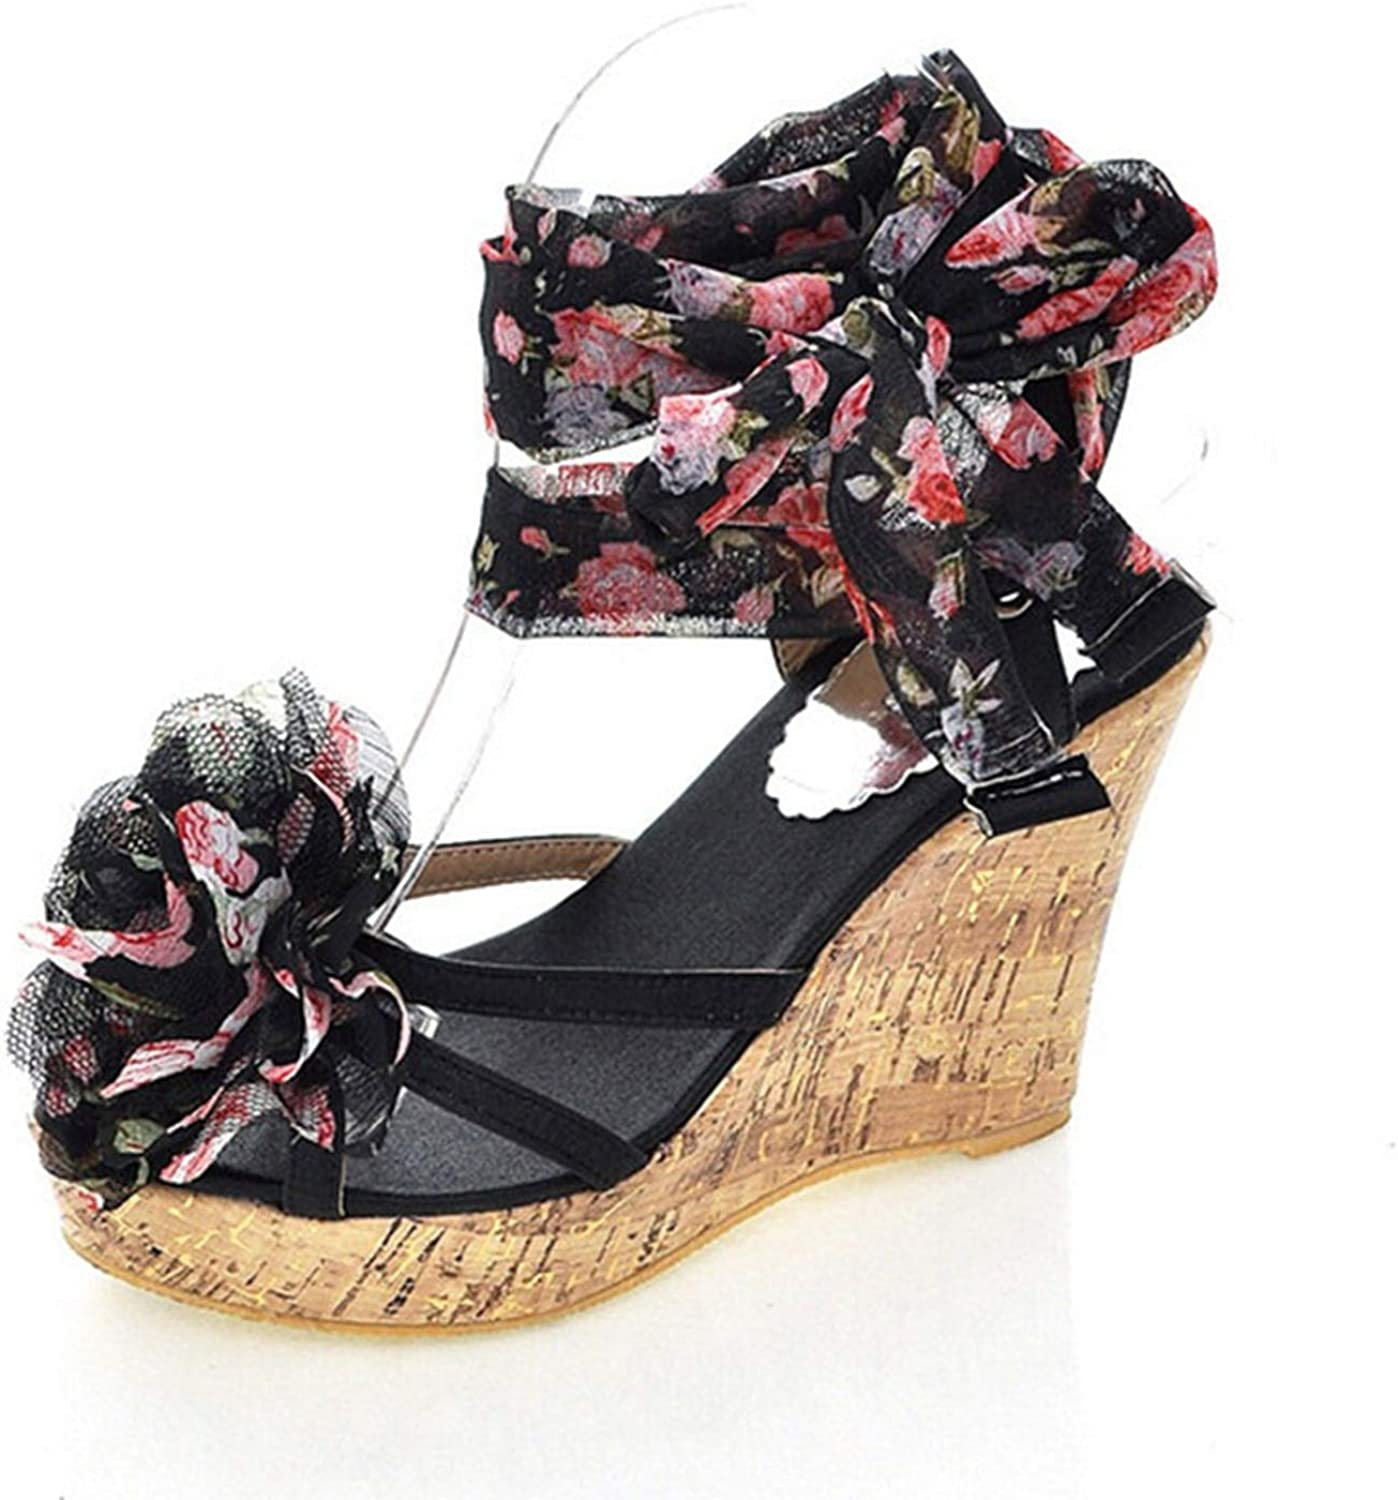 Fairly High Heel Open Toe Print Flower Summer shoes Fashion Sexy for Wedding shoes,Black,6